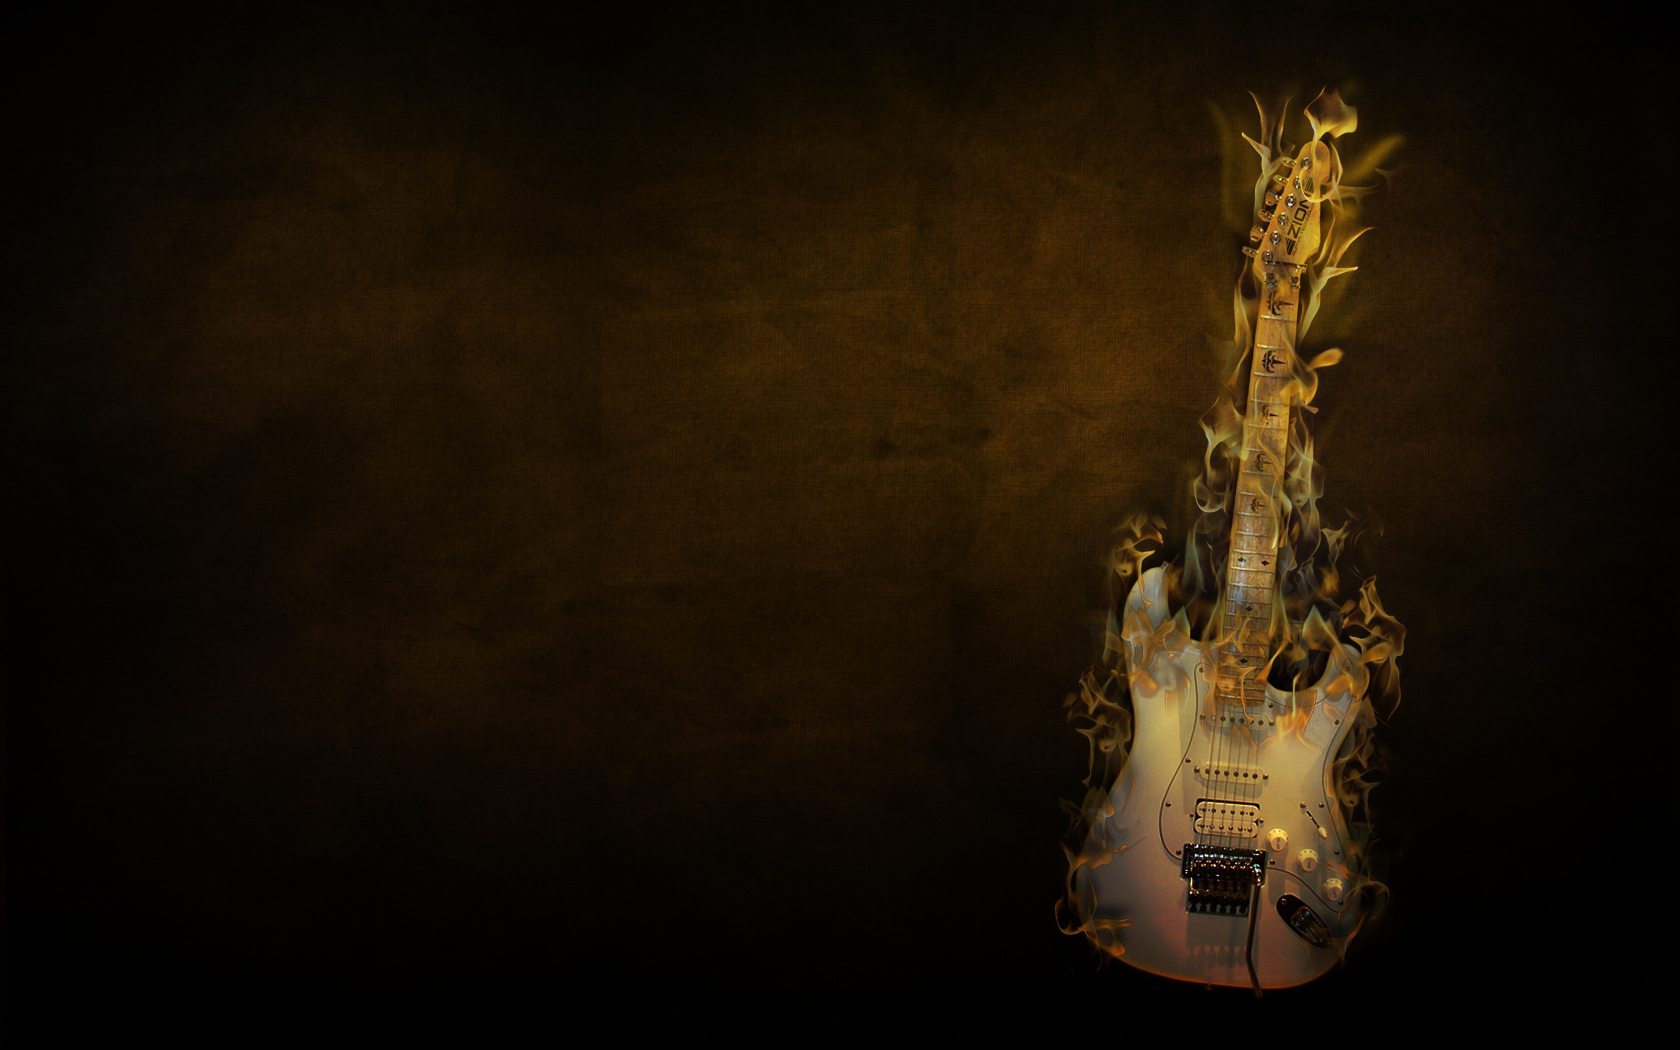 42 Flaming Guitar Wallpaper On Wallpapersafari